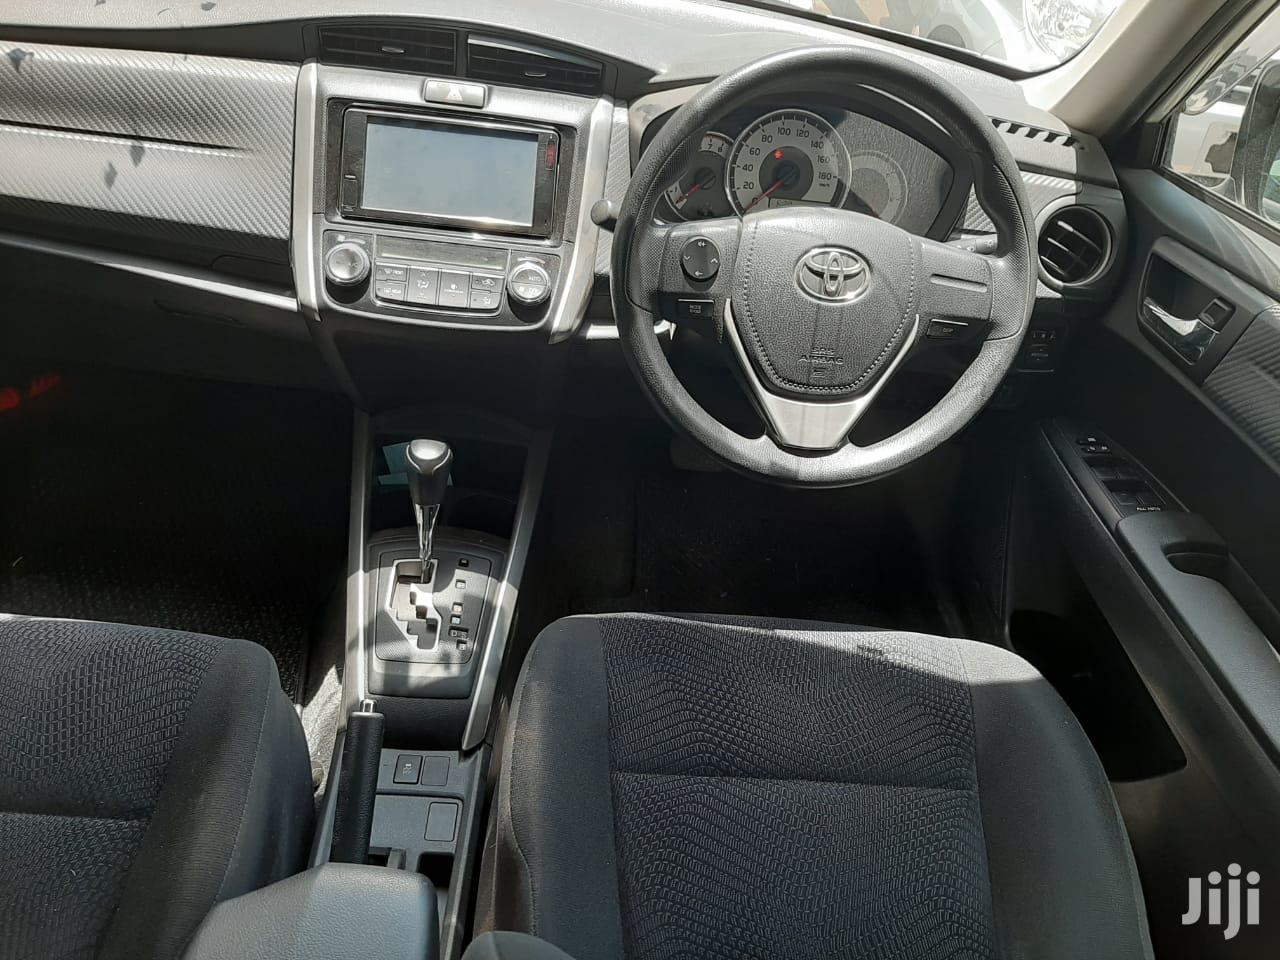 Toyota Fielder 2014 White | Cars for sale in Mvita, Mombasa, Kenya